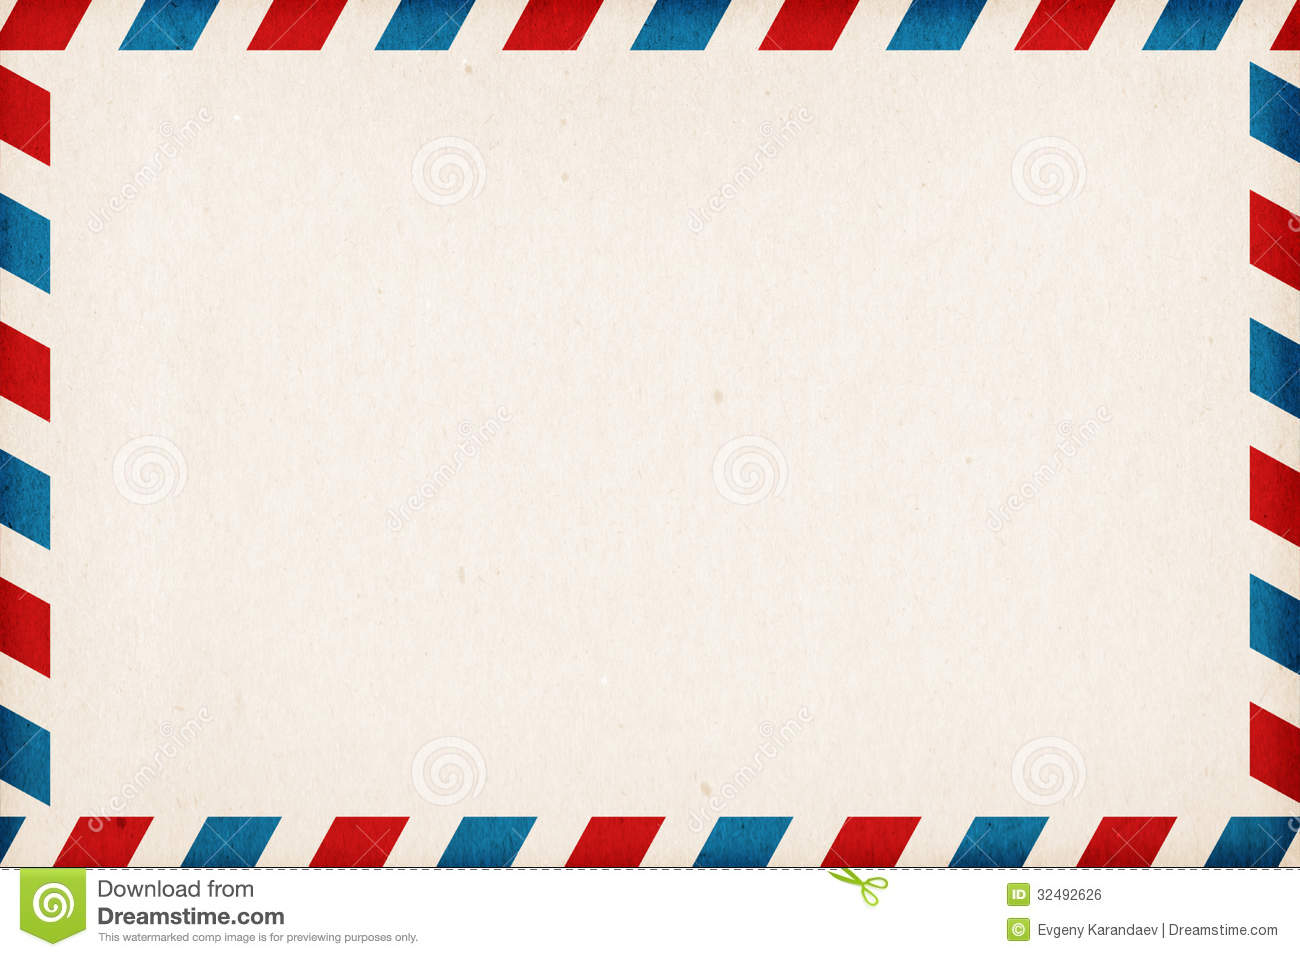 Abstract Post Envelope Background Royalty Free Stock Image - Image ...